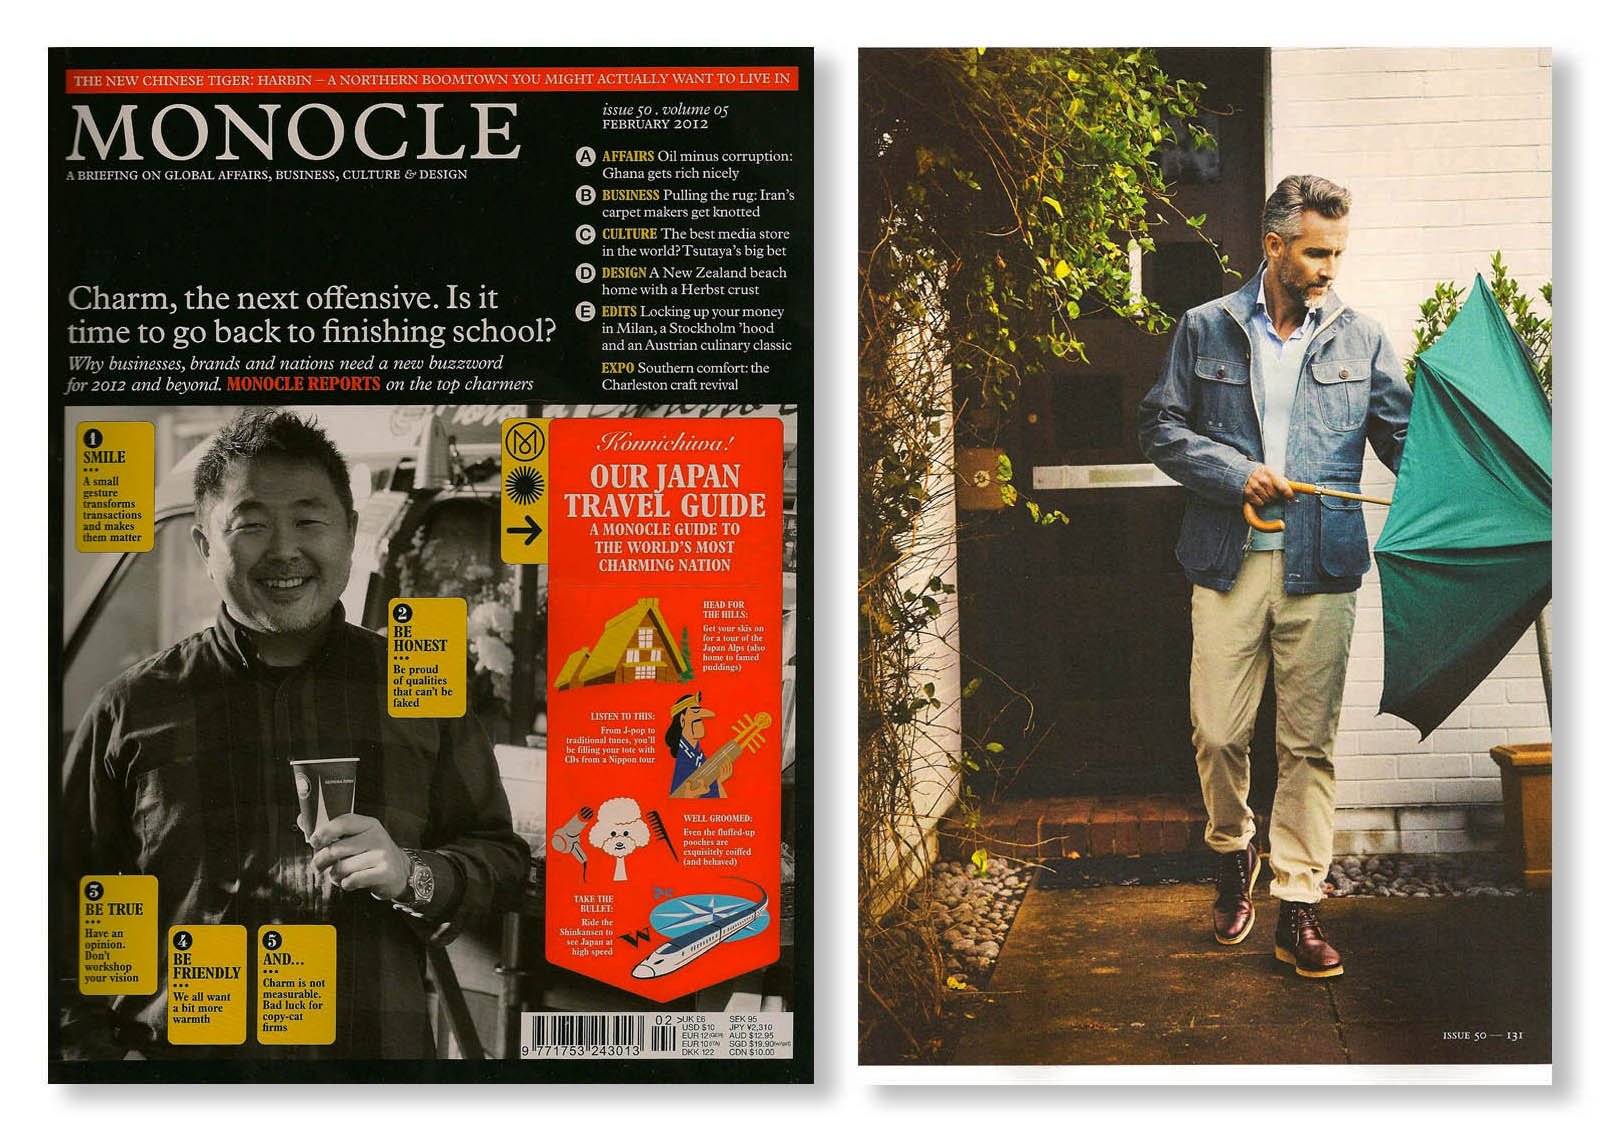 Trunk Clothiers Umbrella by London Undercover featured in Monocle Magazine